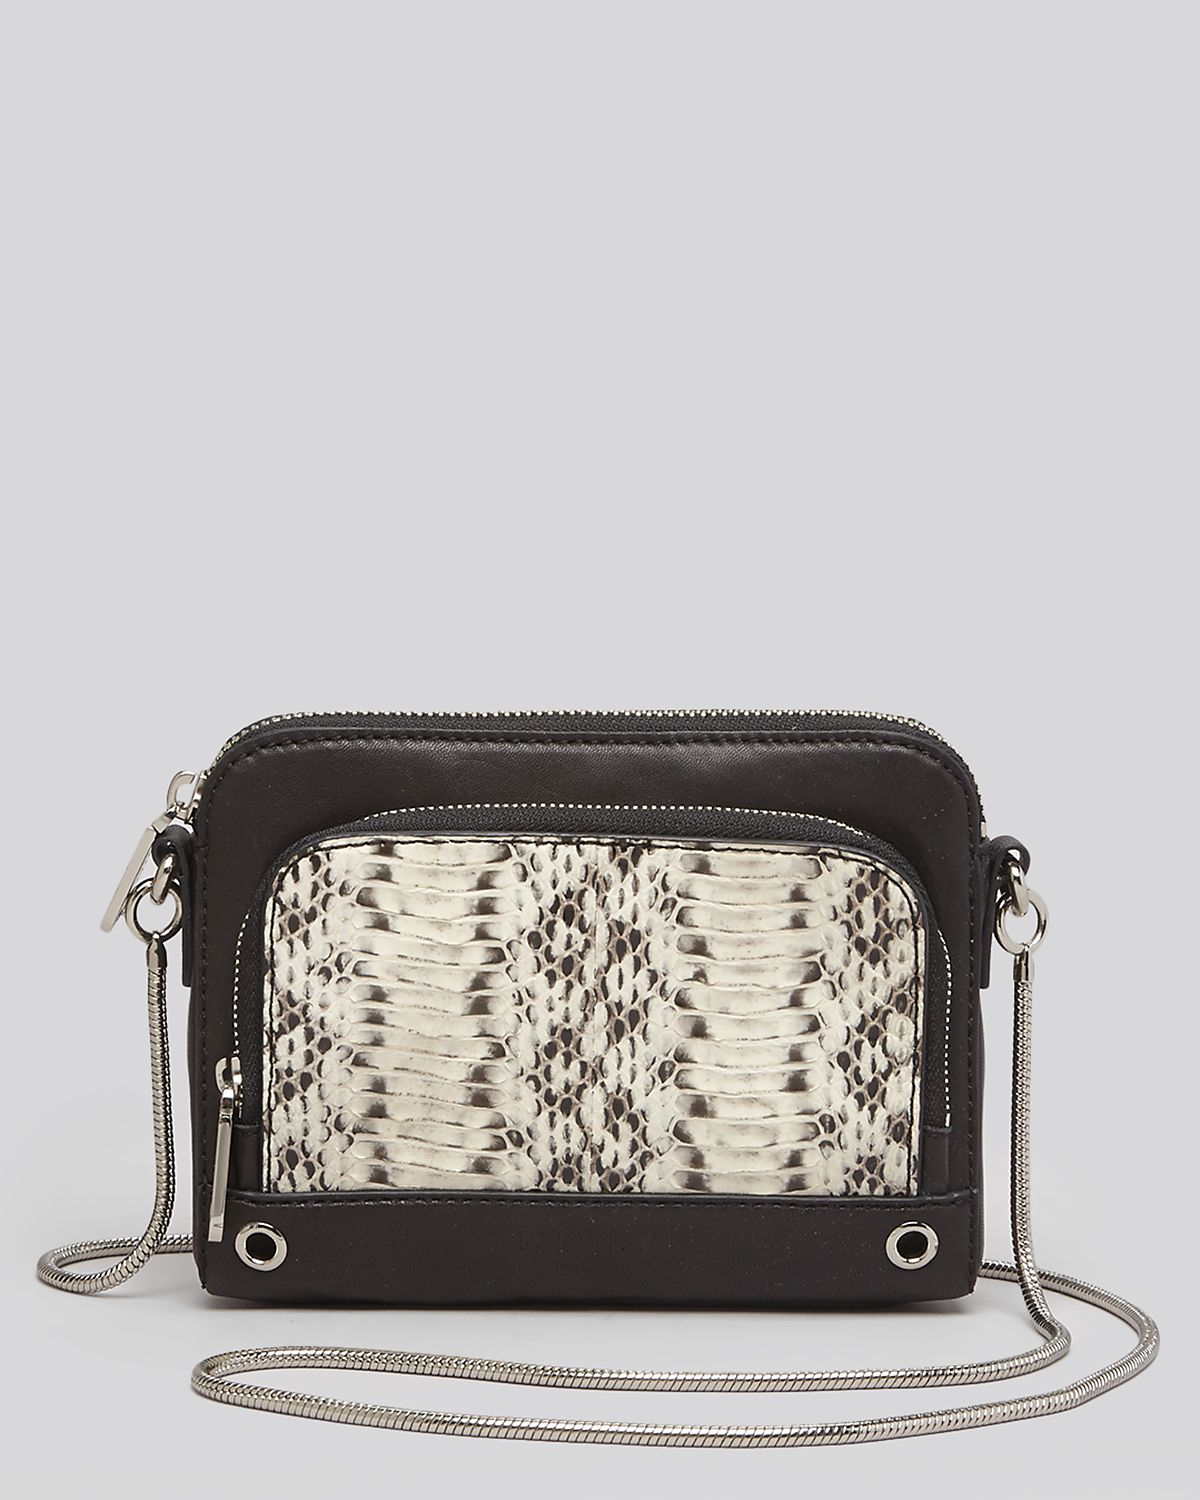 MILLY Crossbody - Mercer Watersnake | Bloomingdale's